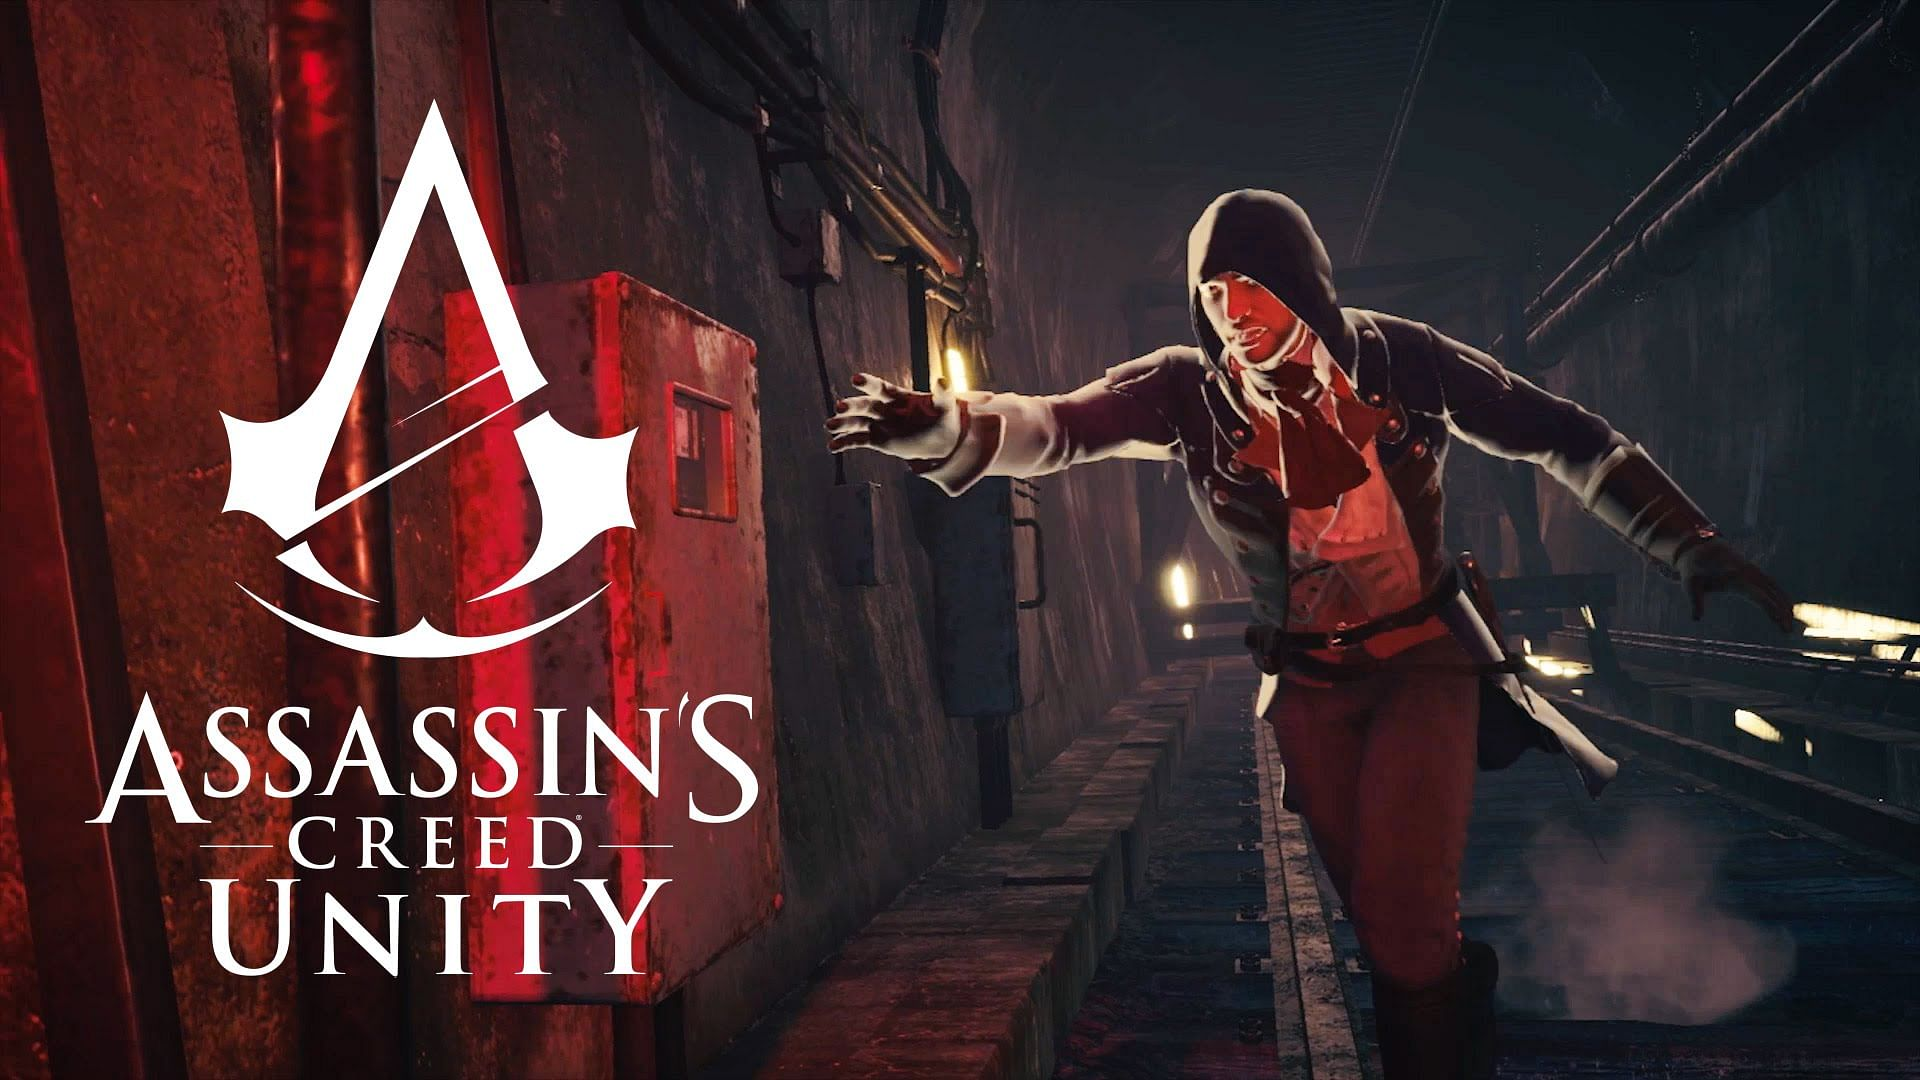 Assassin's Creed Unity new Time Anomaly trailer released